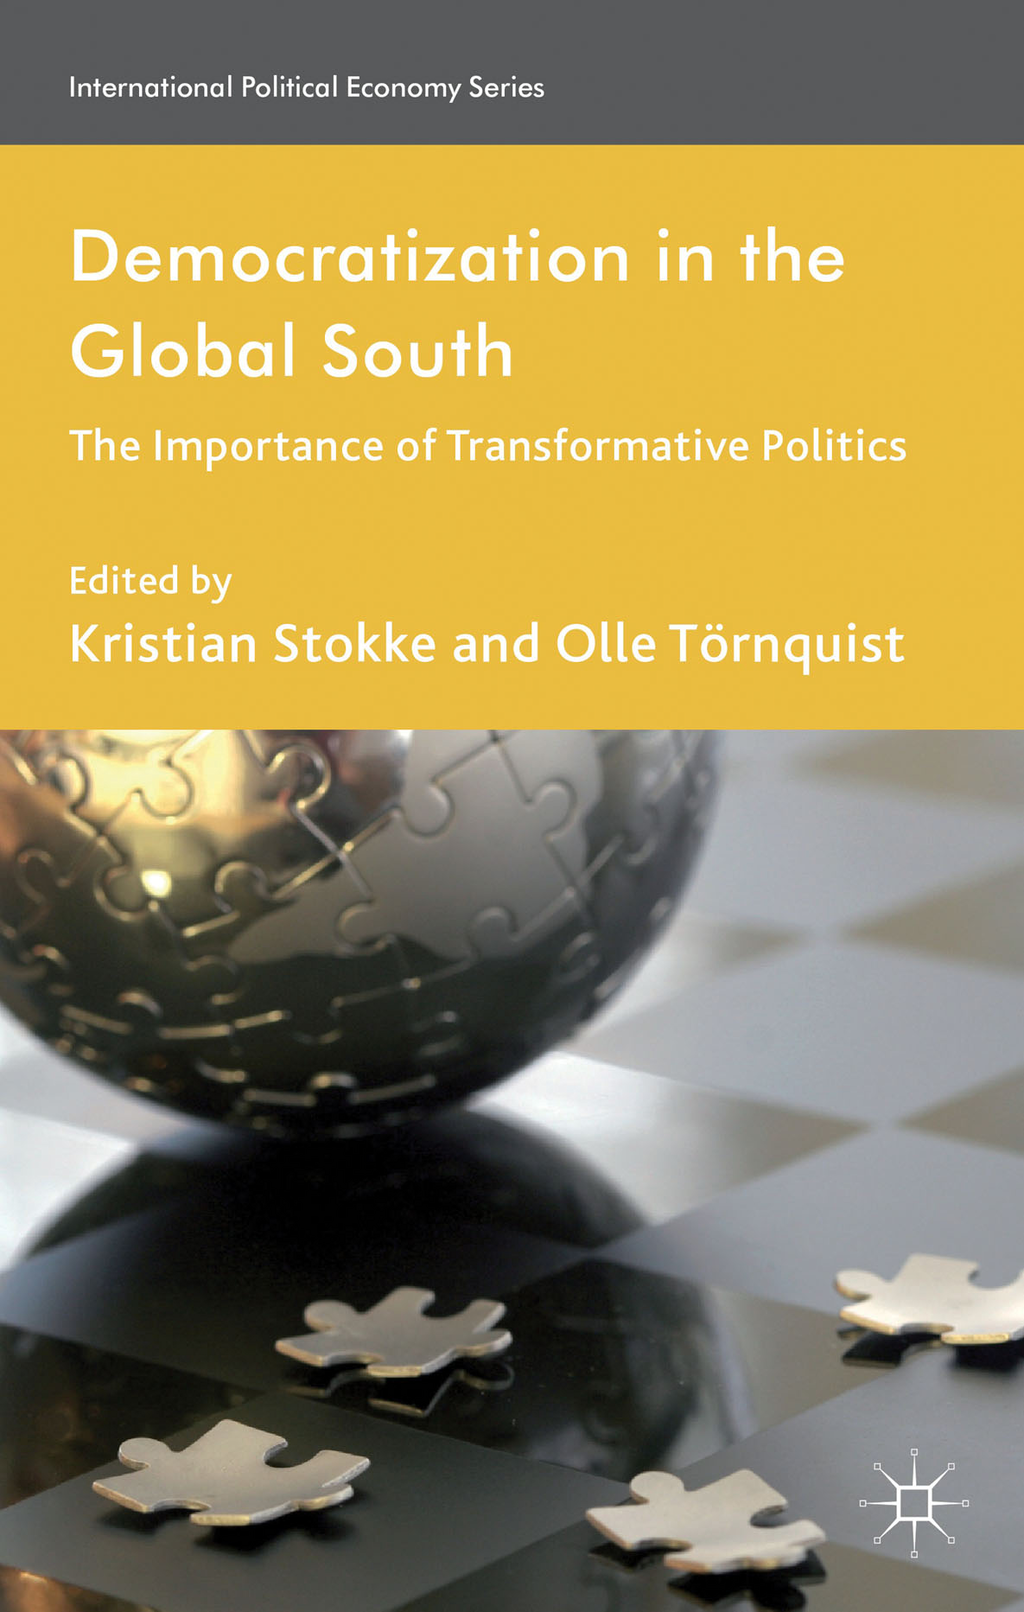 Democratization in the Global South The Importance of Transformative Politics